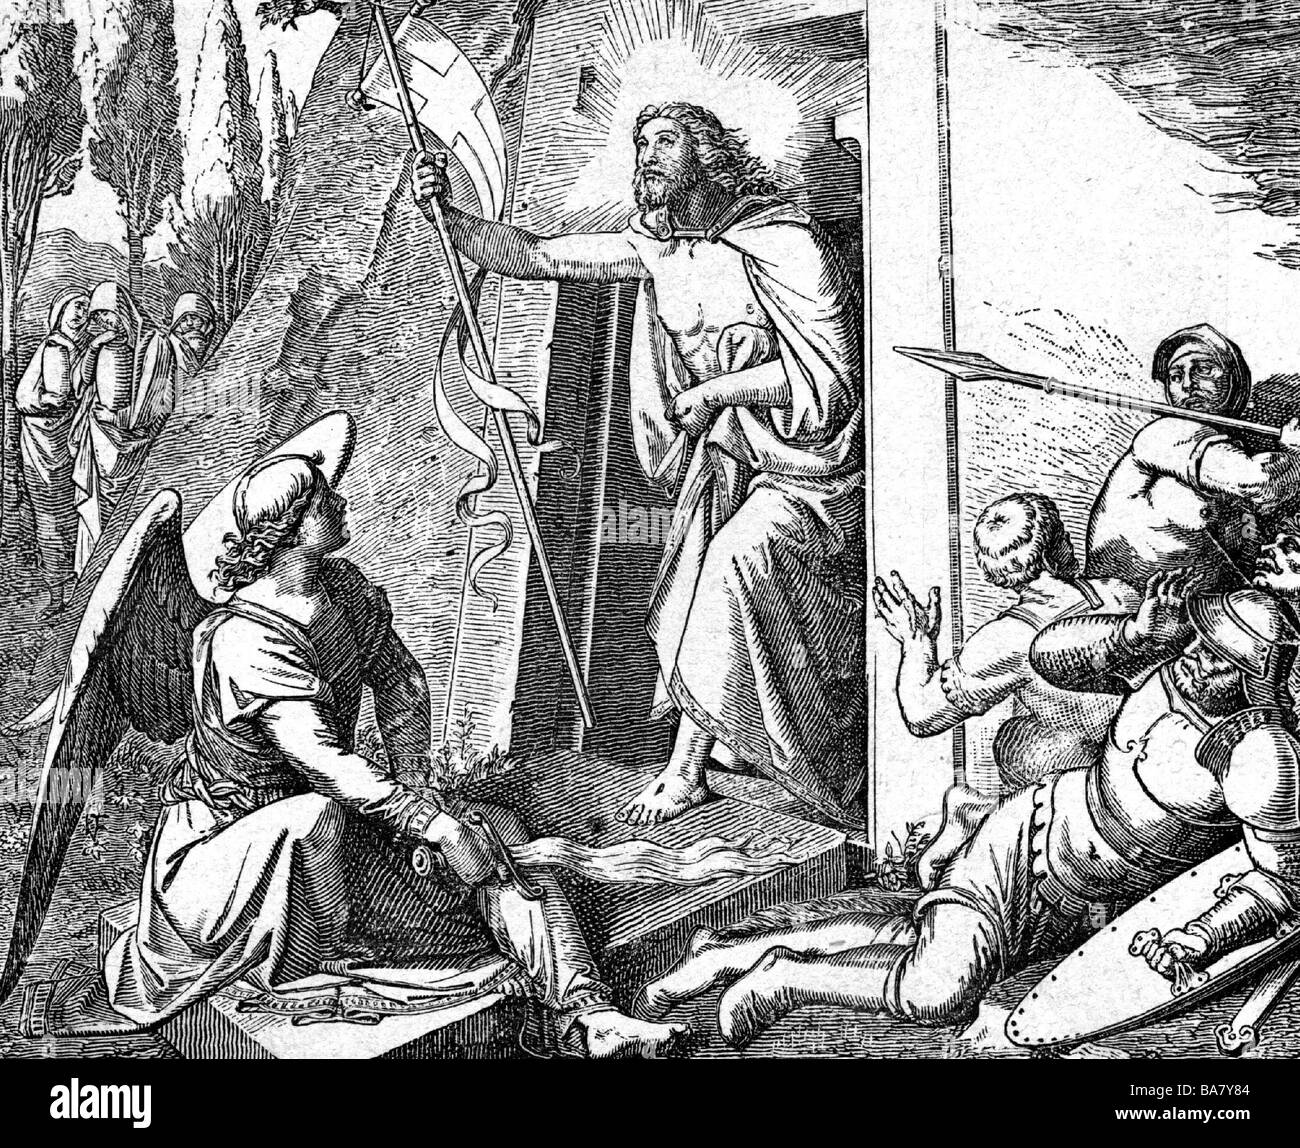 Jesus Christ, circa 4 BC - circa 33 BC, half length, resurrection, wood engraving after painting by Friedrich Overbeck - Stock Image